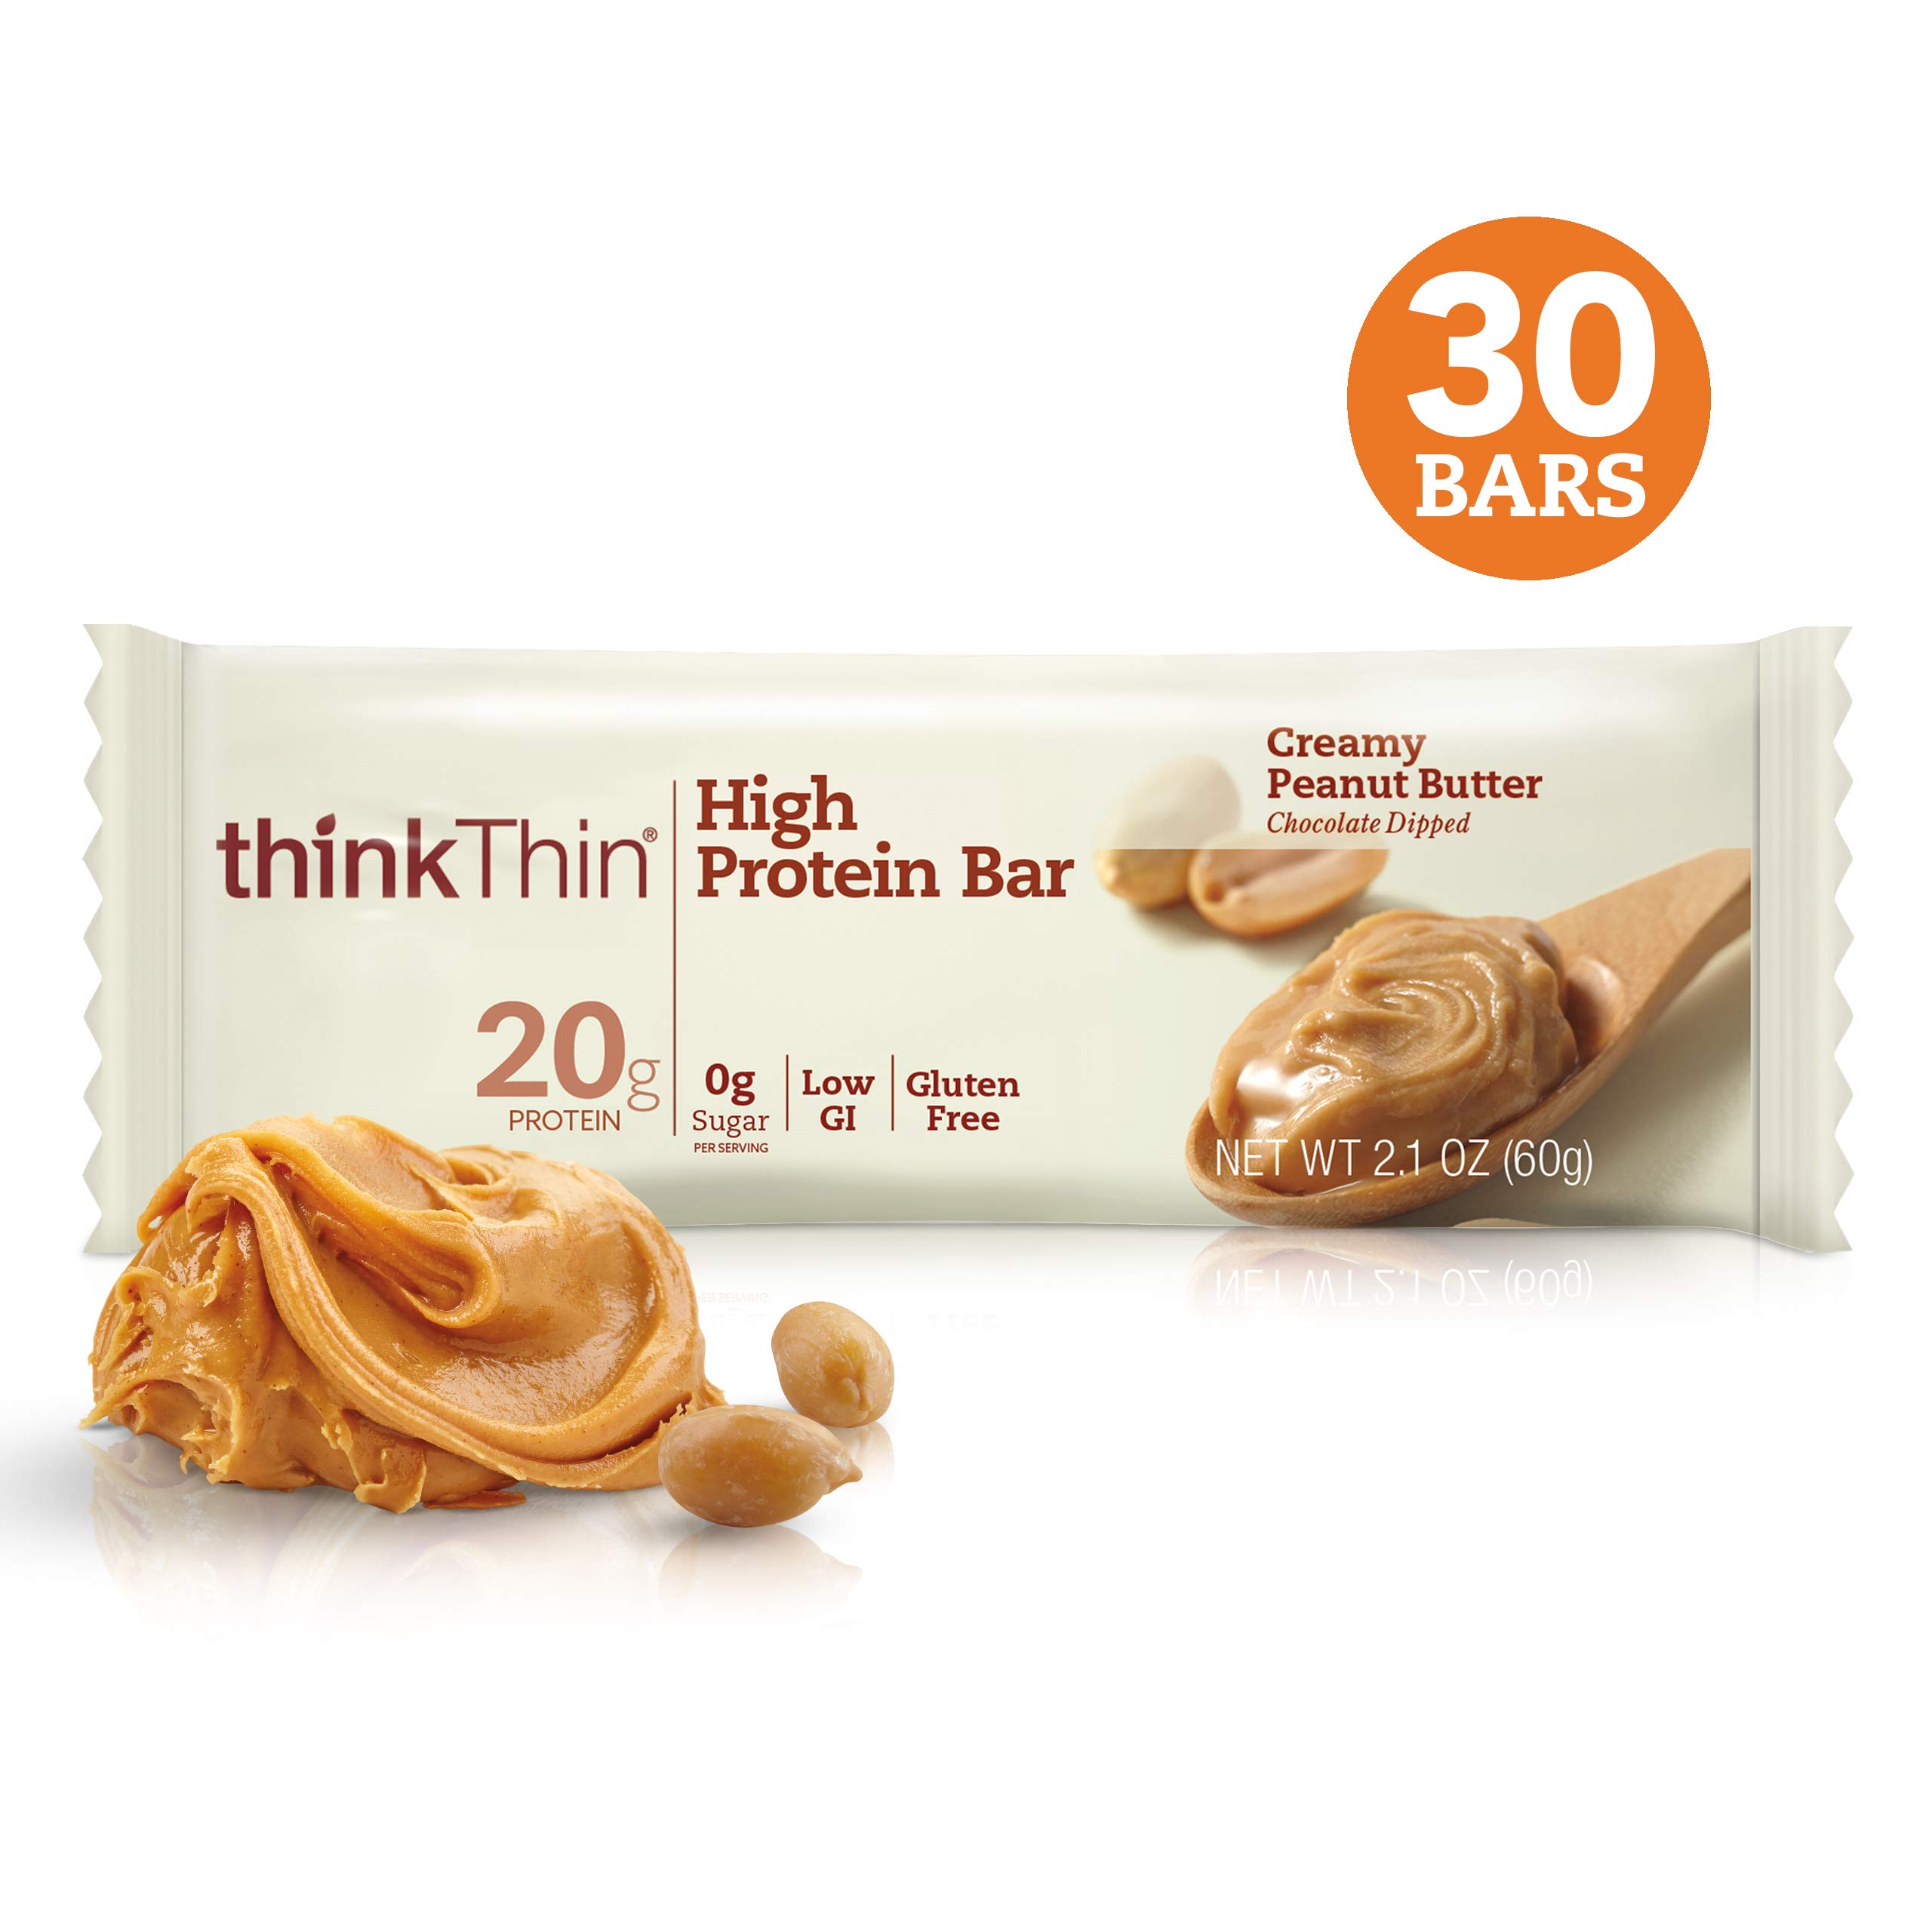 Think! (thinkThin) High Protein Bars - Creamy Peanut Butter, 20g Protein, 0g Sugar, No Artificial Sweeteners, Gluten Free, GMO Free*, 2.1 oz (30Count - Packaging May Vary))